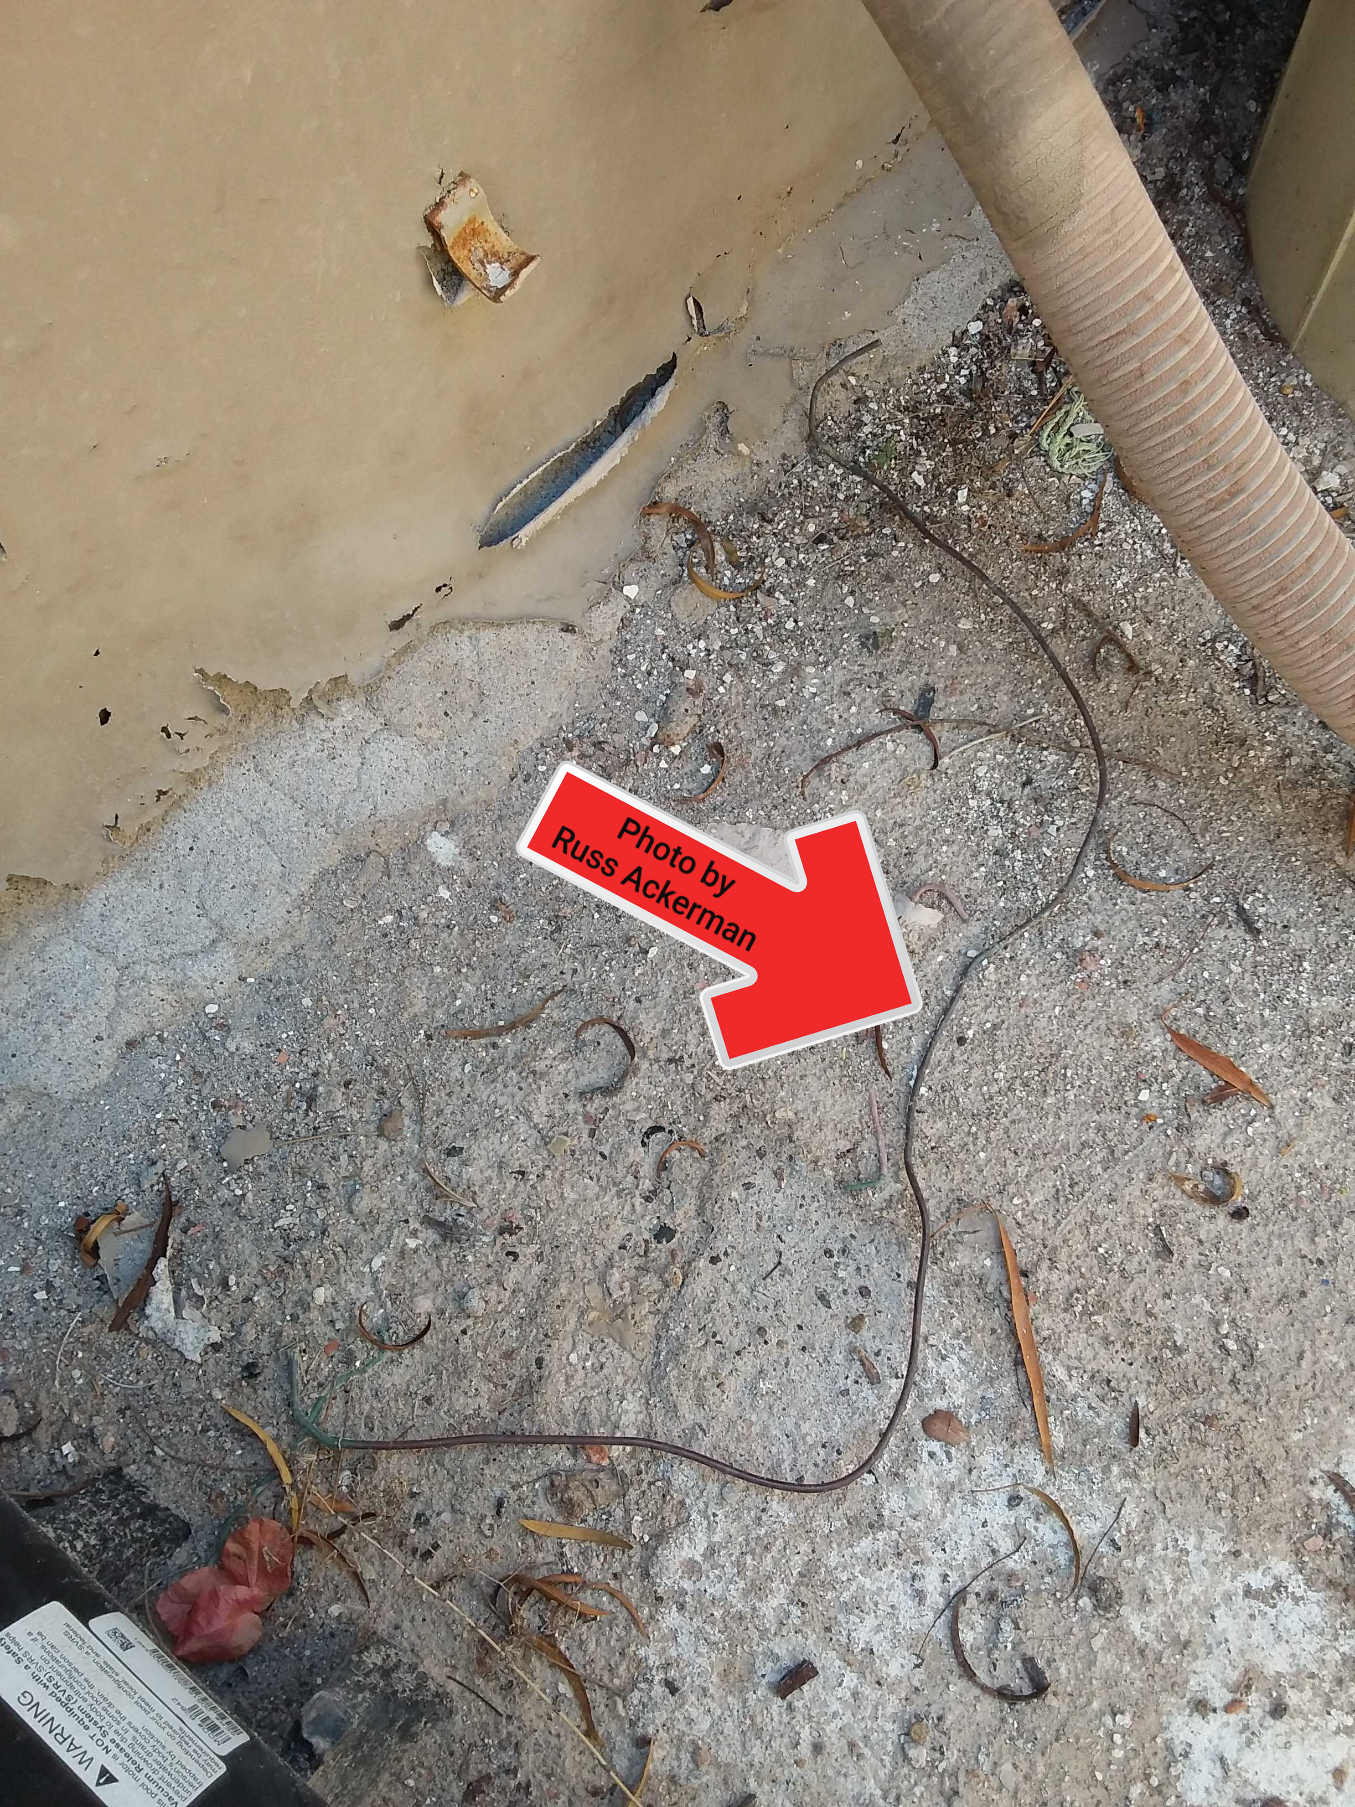 A bonding wire laying on the ground next to your pool equipment is serving be purpose. This is a safety hazard.